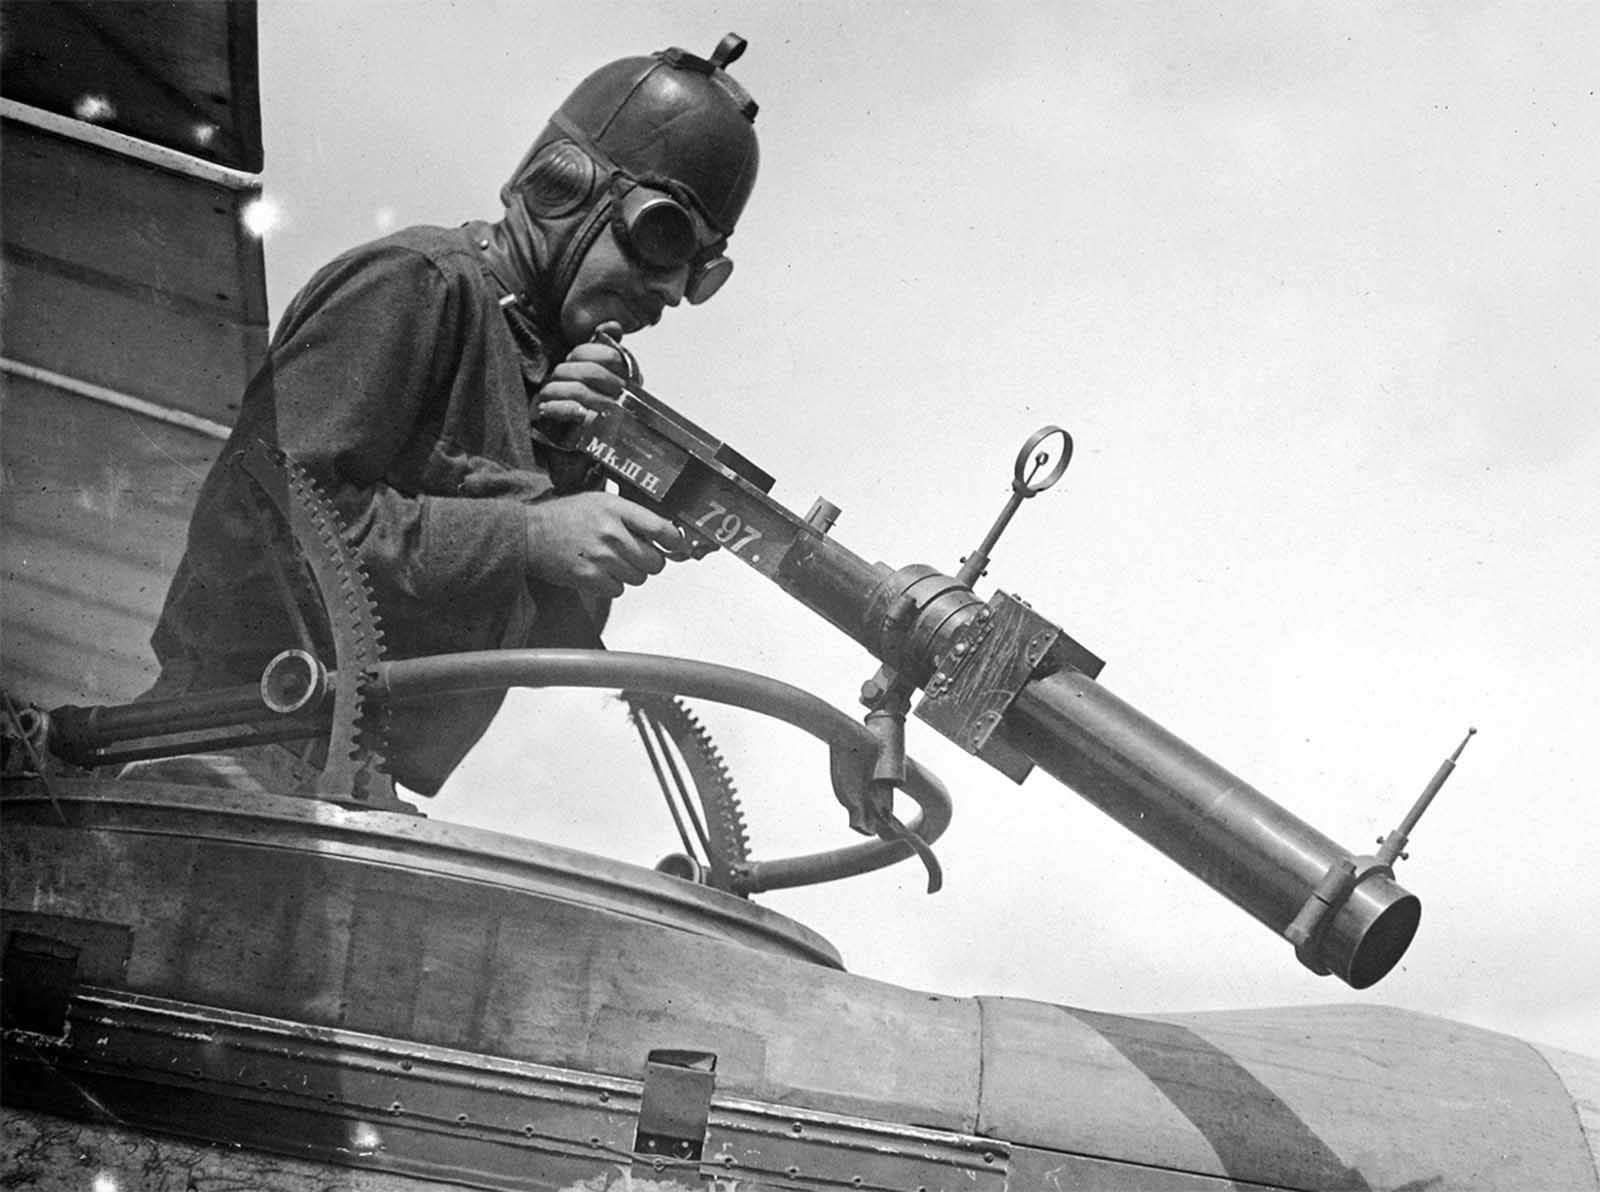 A soldier poses with a Hythe Mk III Gun Camera during training activities at Ellington Field, Houston, Texas in April of 1918. The Mk III, built to match the size, handling, and weight of a Lewis Gun, was used to train aerial gunners, recording a photograph when the trigger was pulled, for later review, when an instructor could coach trainees on better aiming strategies.